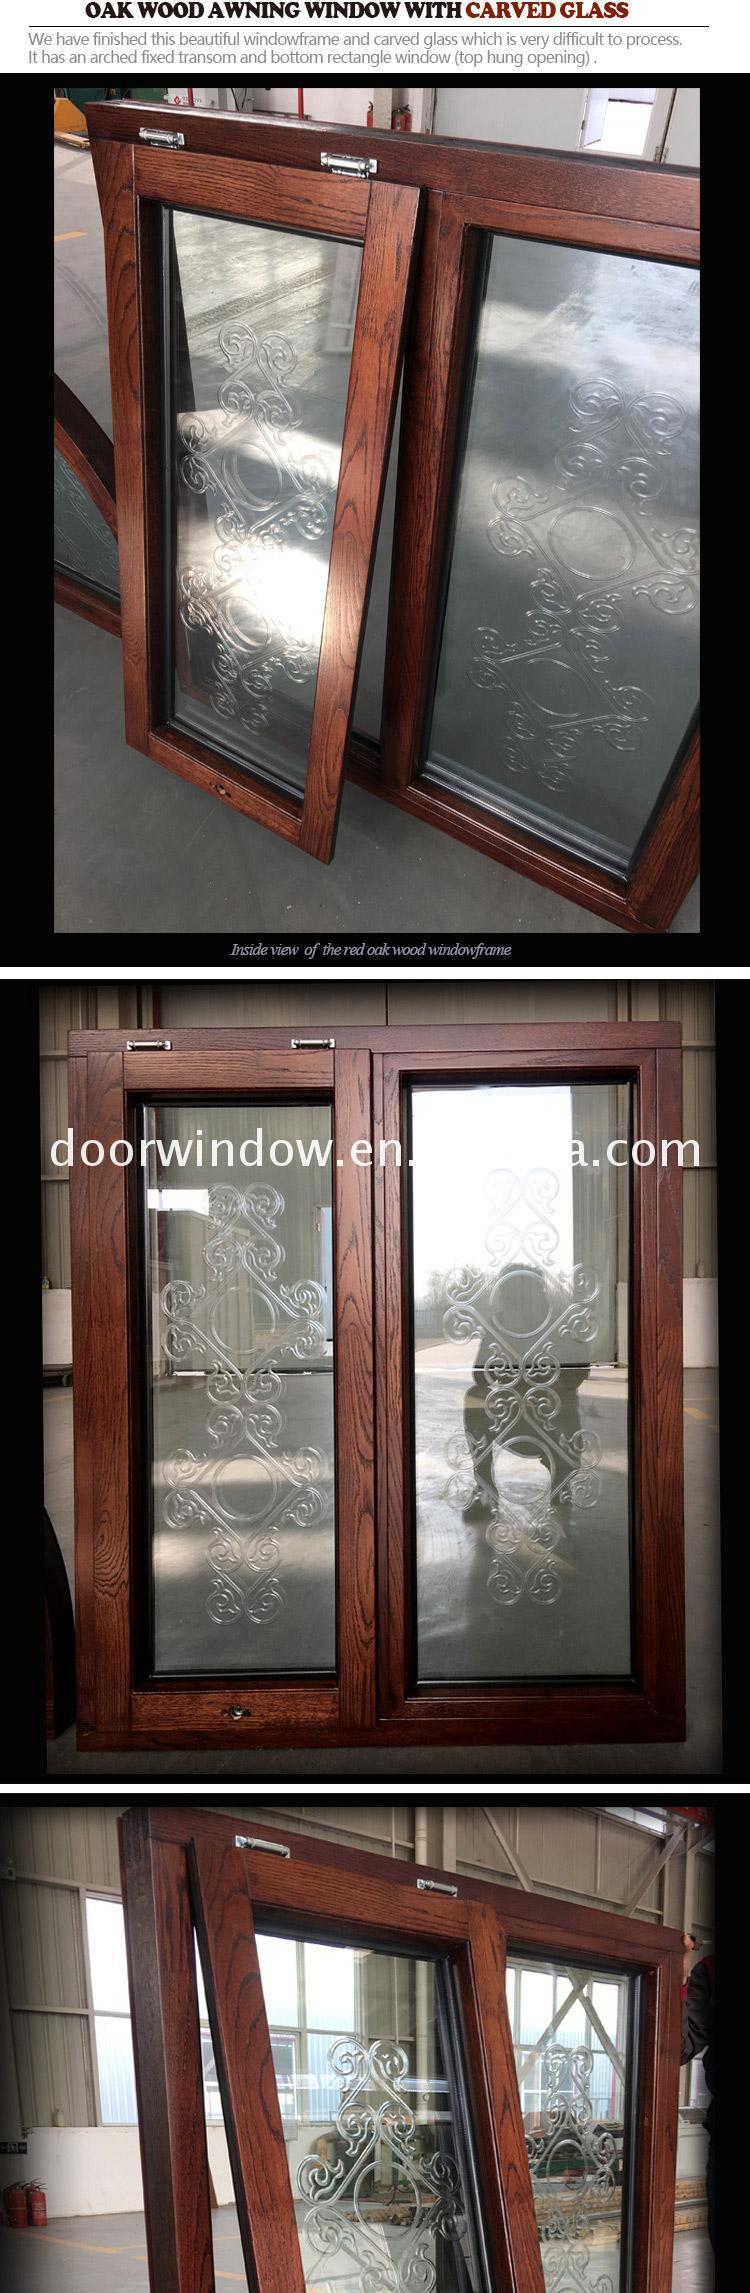 AS2047 Certified Round window photos of grills for windows old wood sale